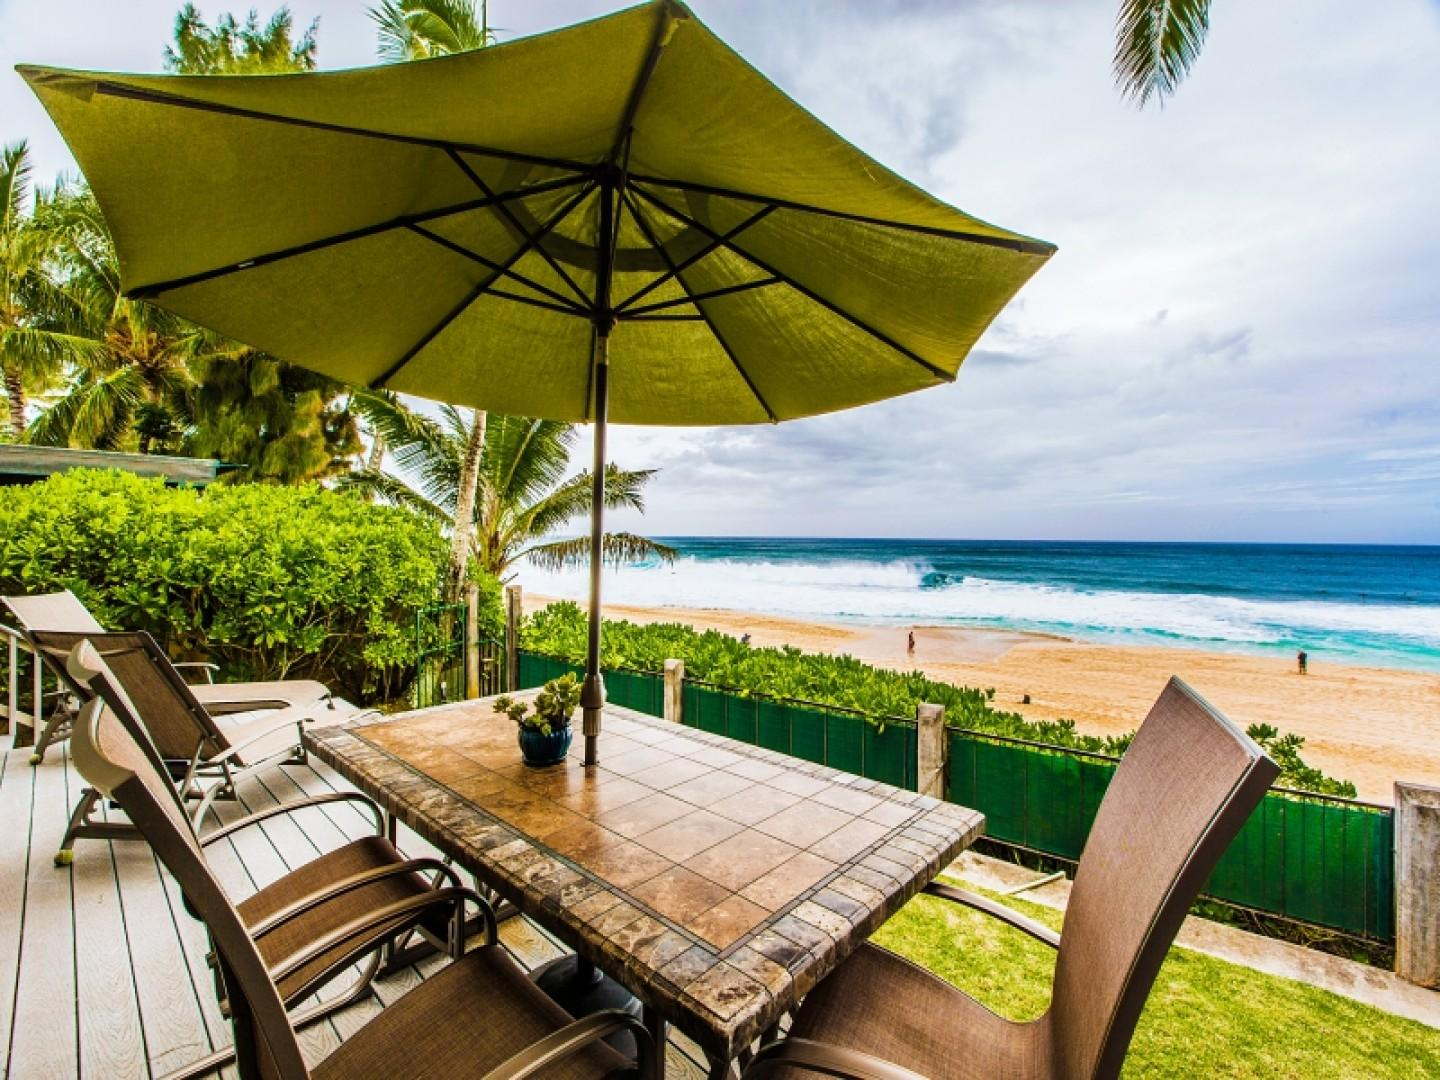 Lanai dining area, just steps from the ocean.